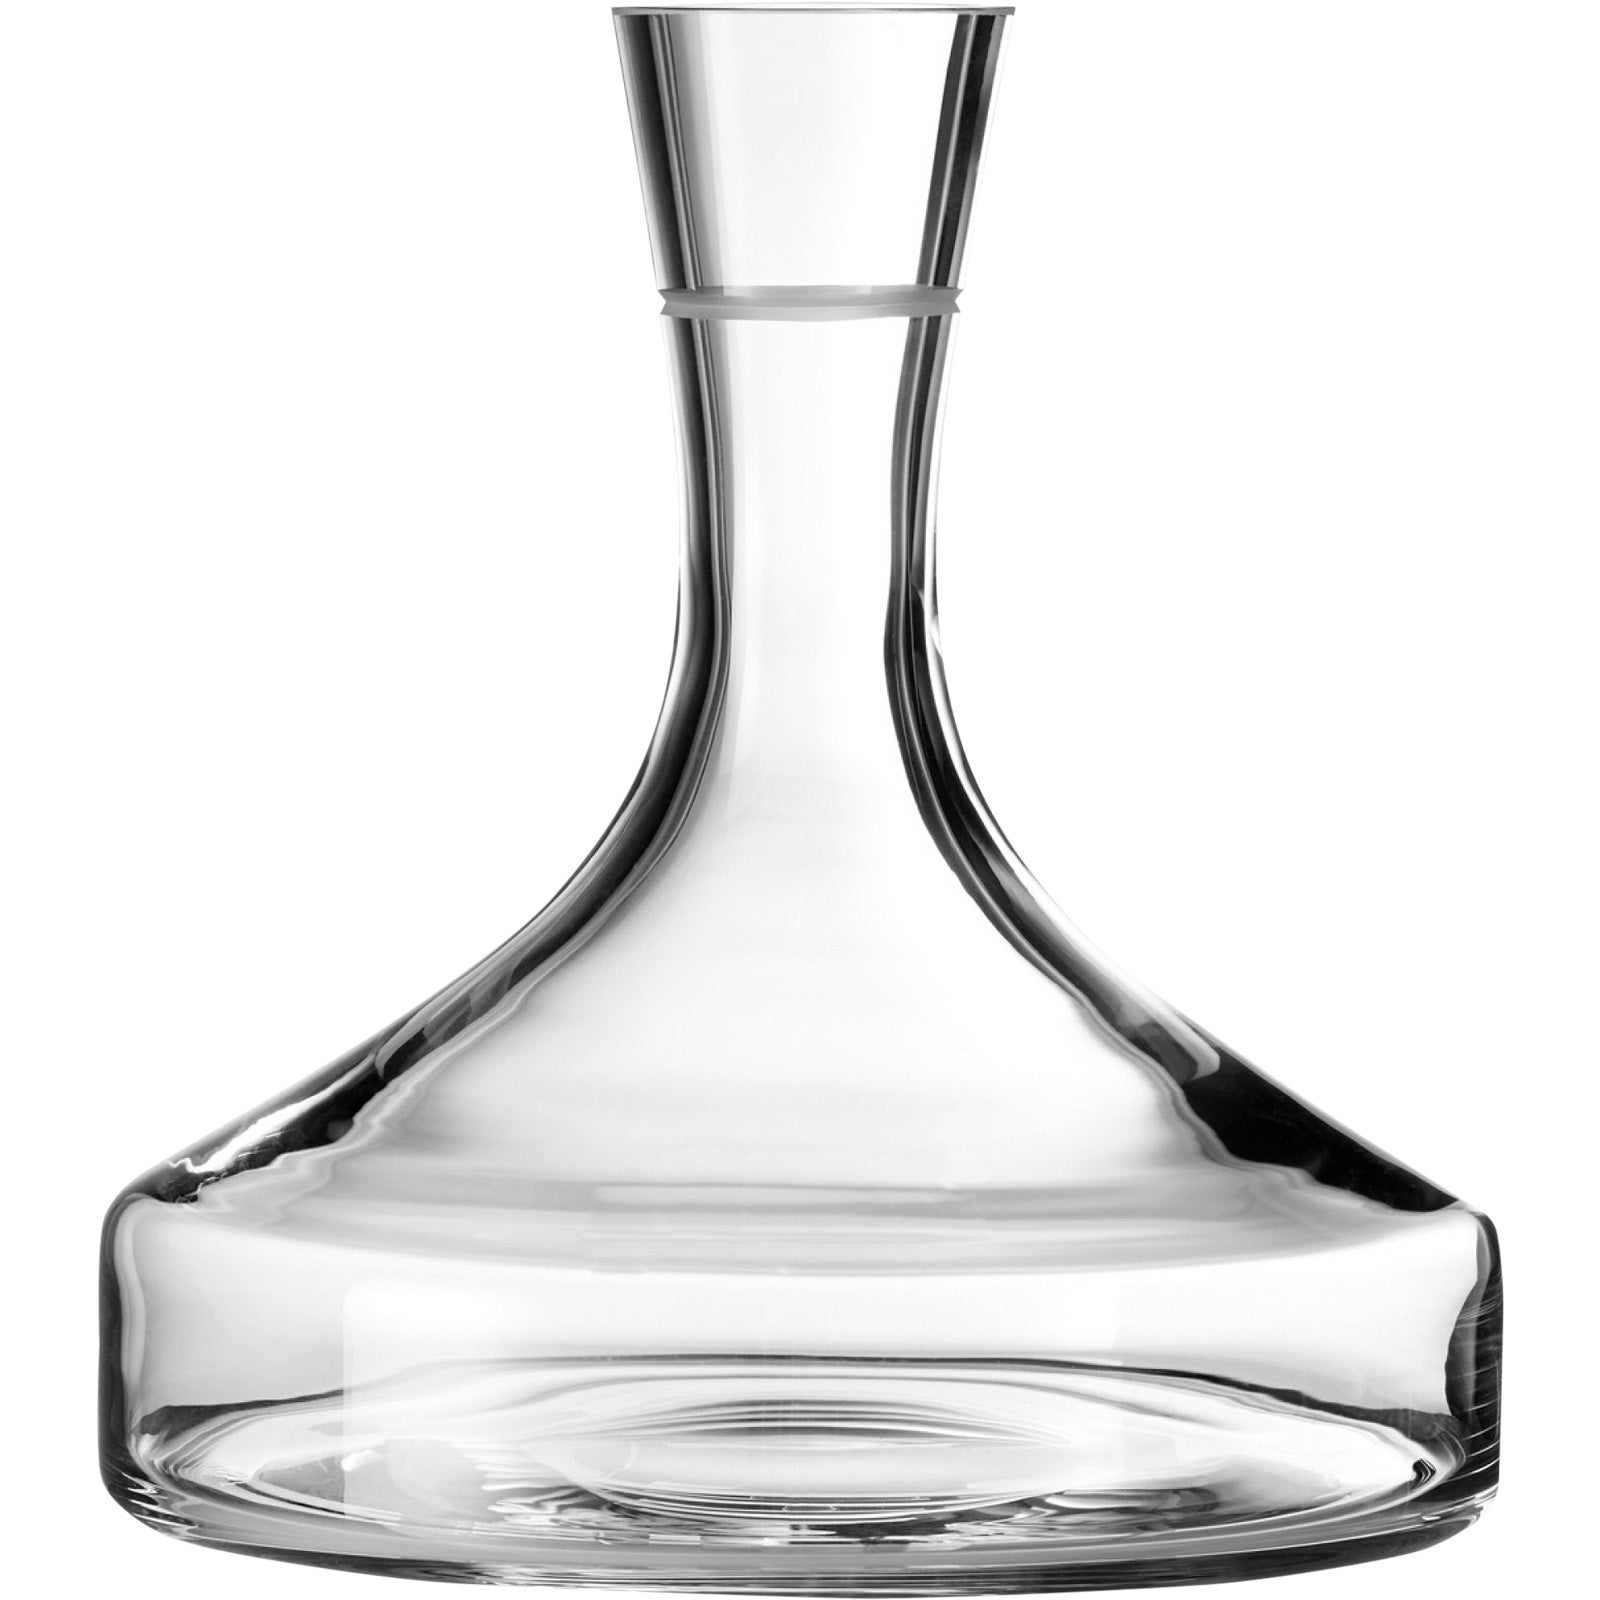 Bande Wine Decanter by VERA WANG FOR WEDGWOOD on LuxDeco.co